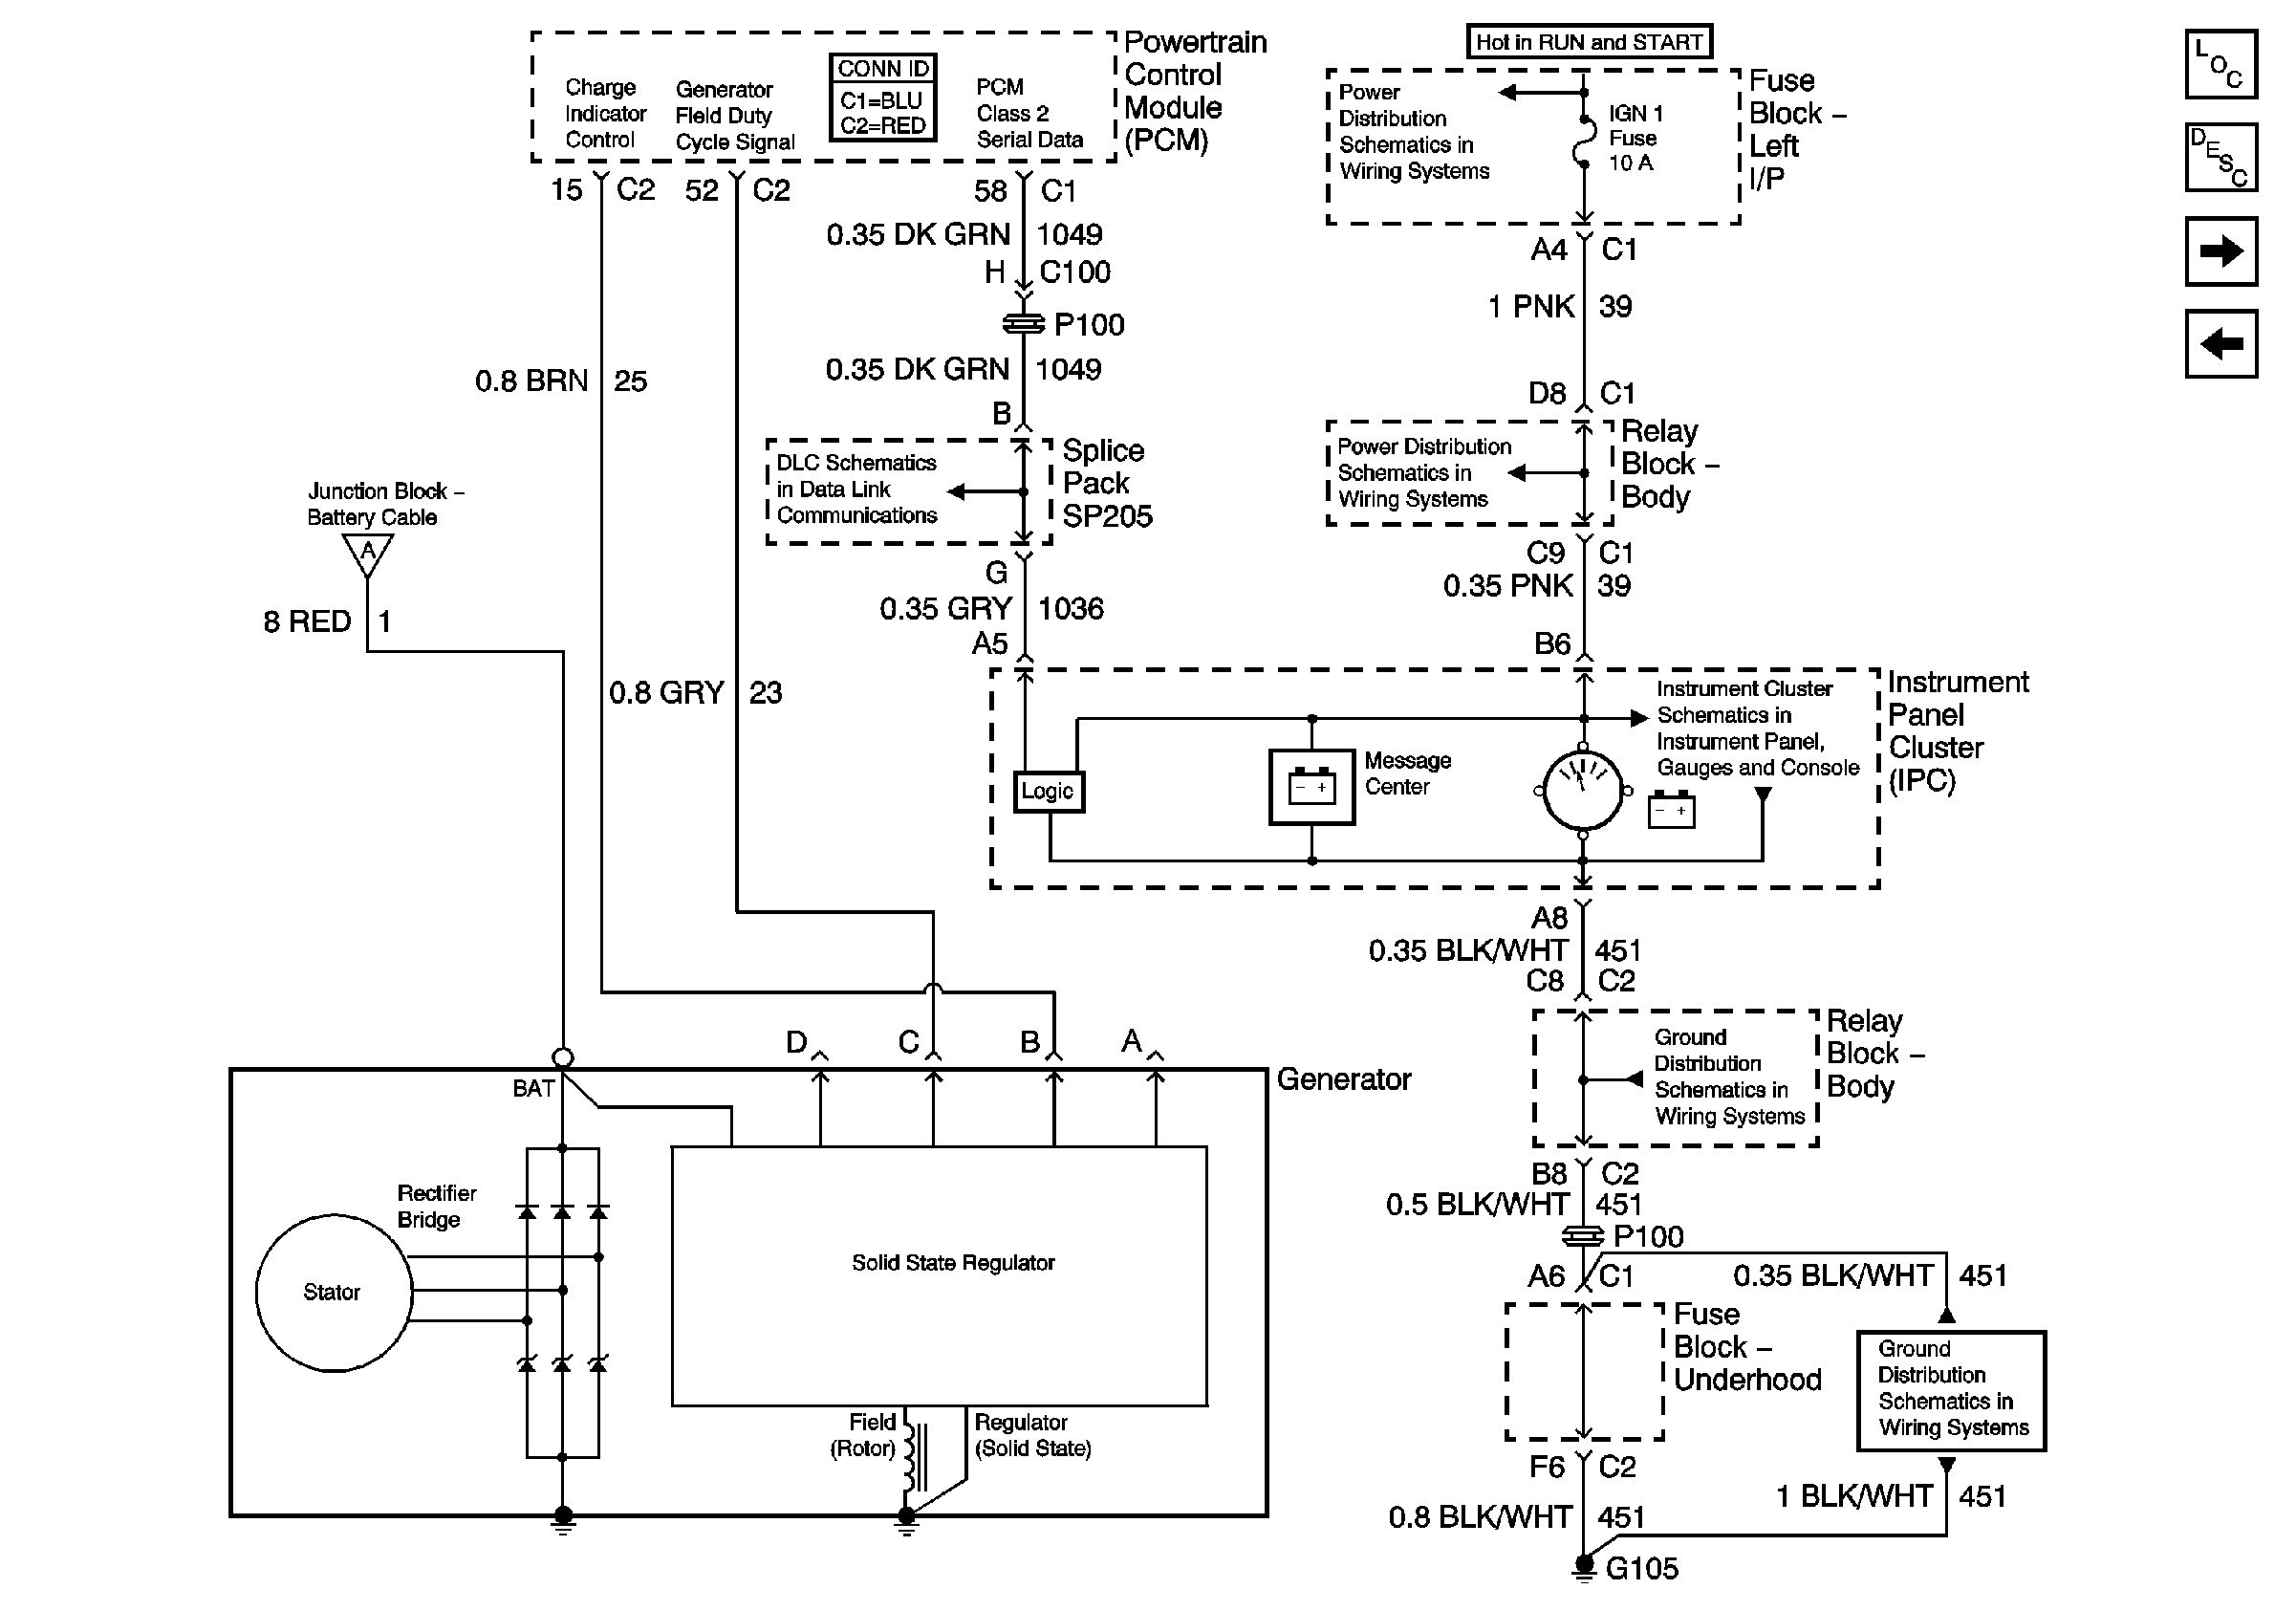 1975 gmc motorhome wiring diagram trusted wiring diagrams 1975 gmc motorhome wiring diagram images gallery asfbconference2016 Image collections